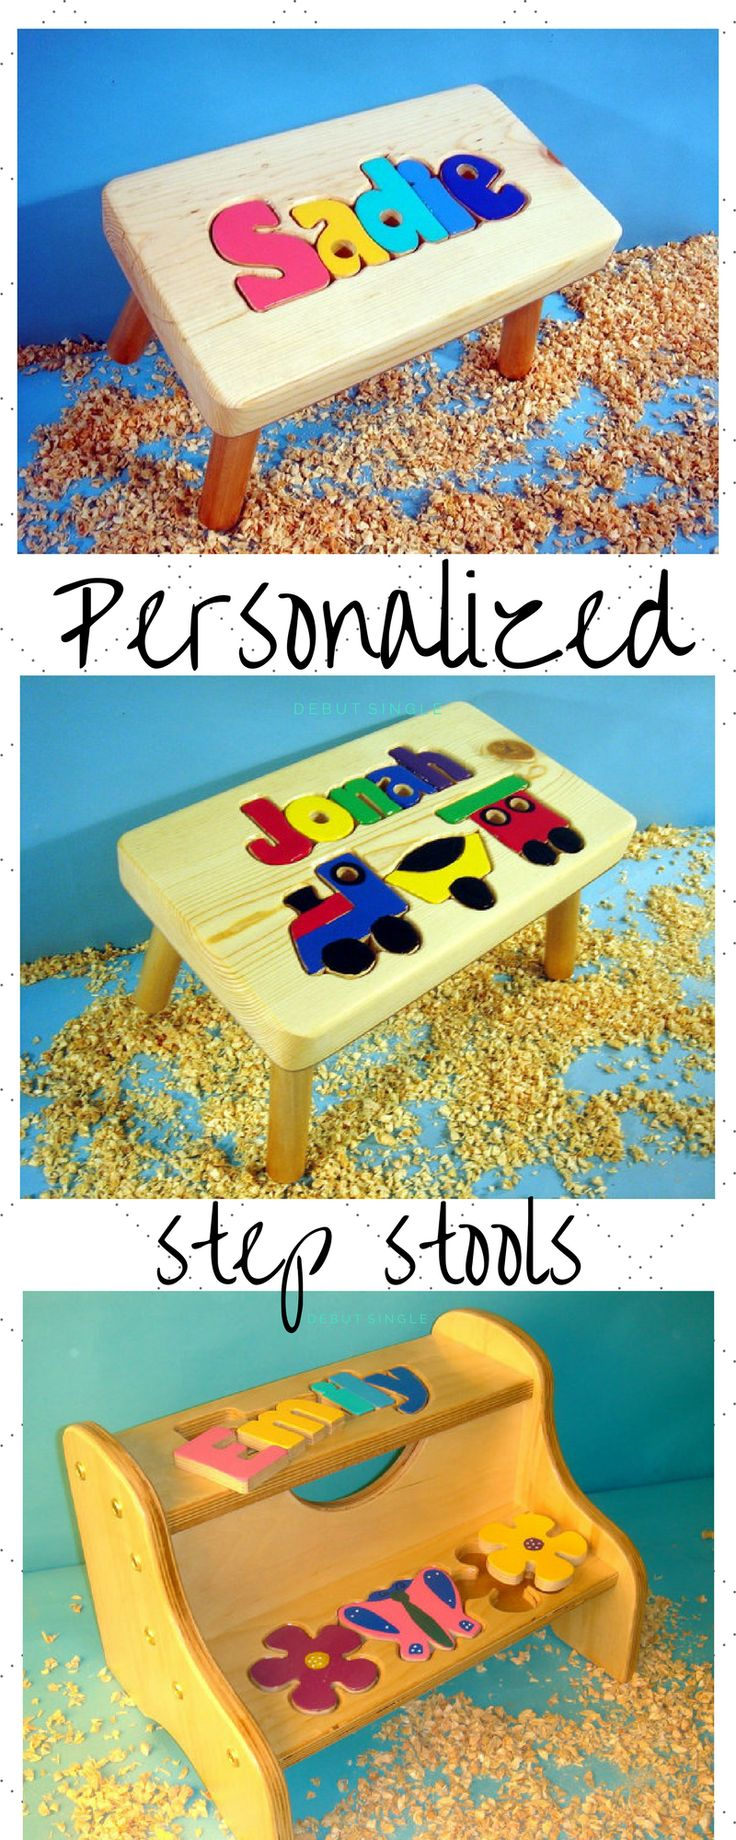 Handcut Personalized Puzzle Name Stools. The perfect gift for that special child in your life. #ad#handcut#handmade#etsy#stepstool#personalized#gifts#children#kids#toddler#puzzle#namepuzzle#christmas